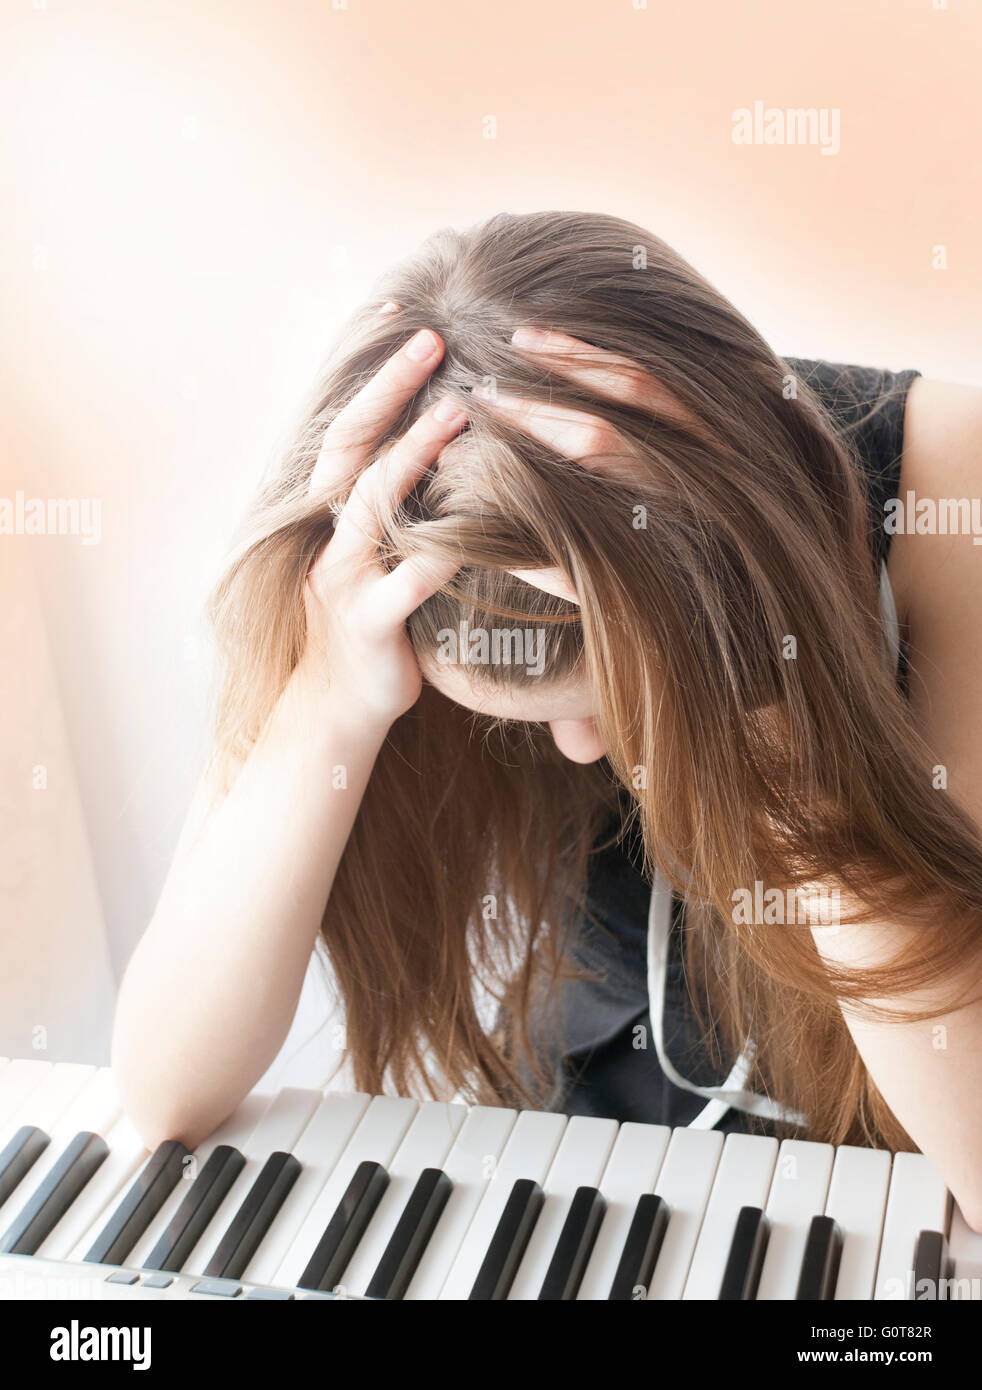 Portrait of a stressed  teenage girl - Stock Image